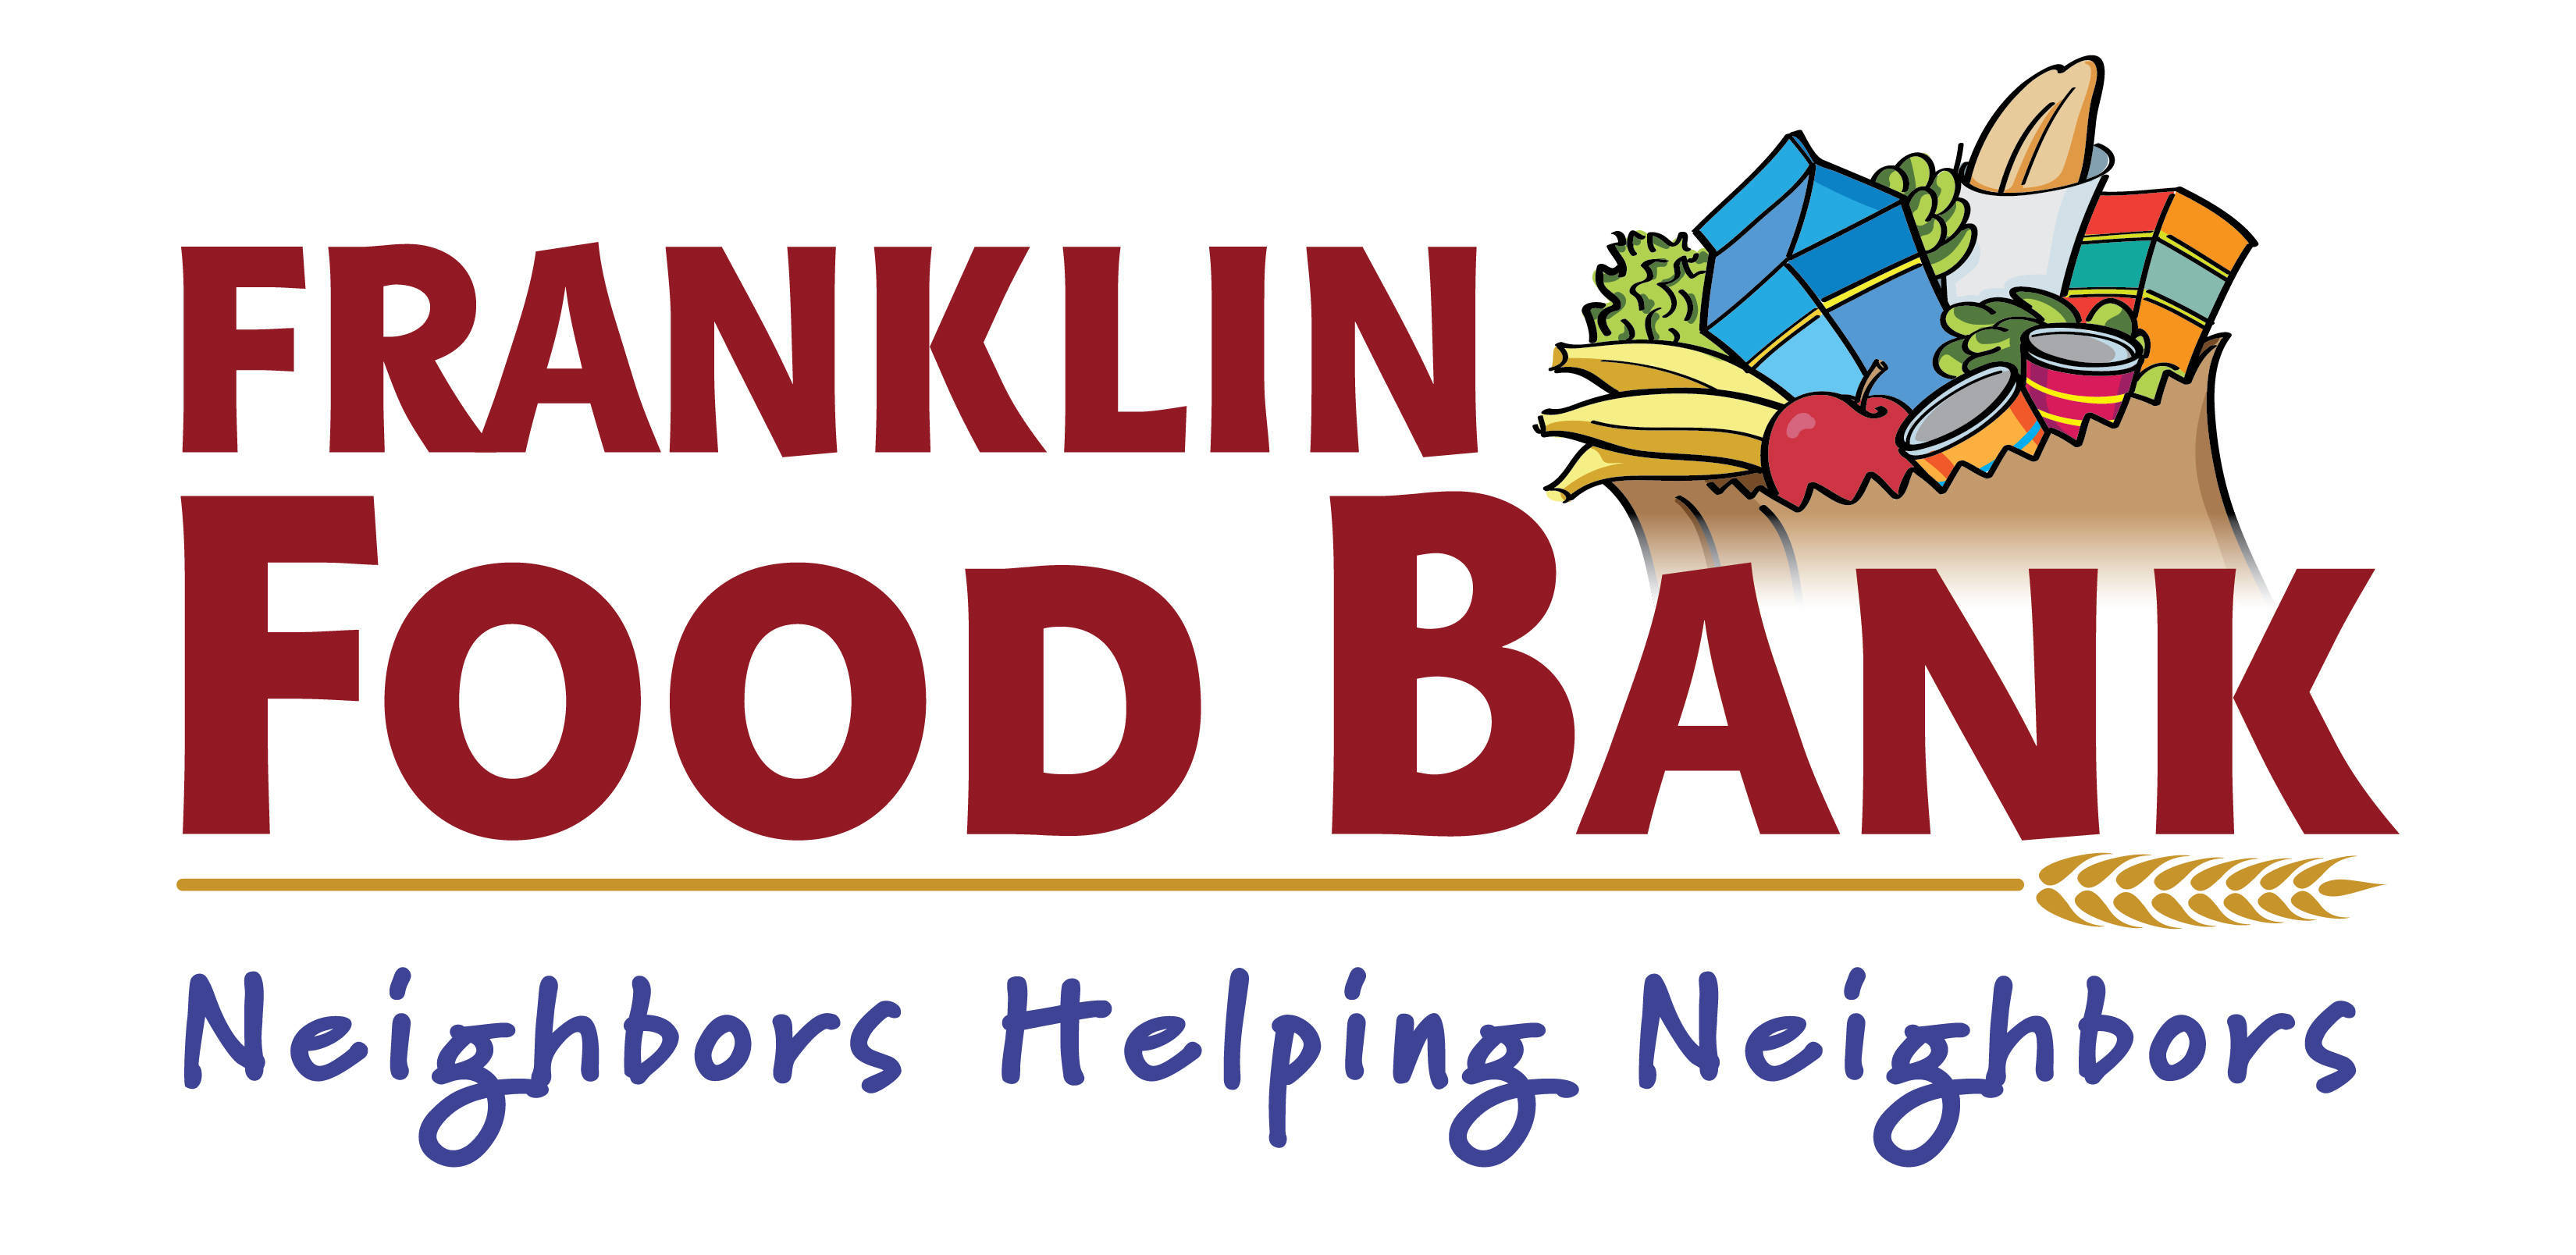 09e8952bd23509520b4c_Franklin-Food-Bank-Logo-01.jpg